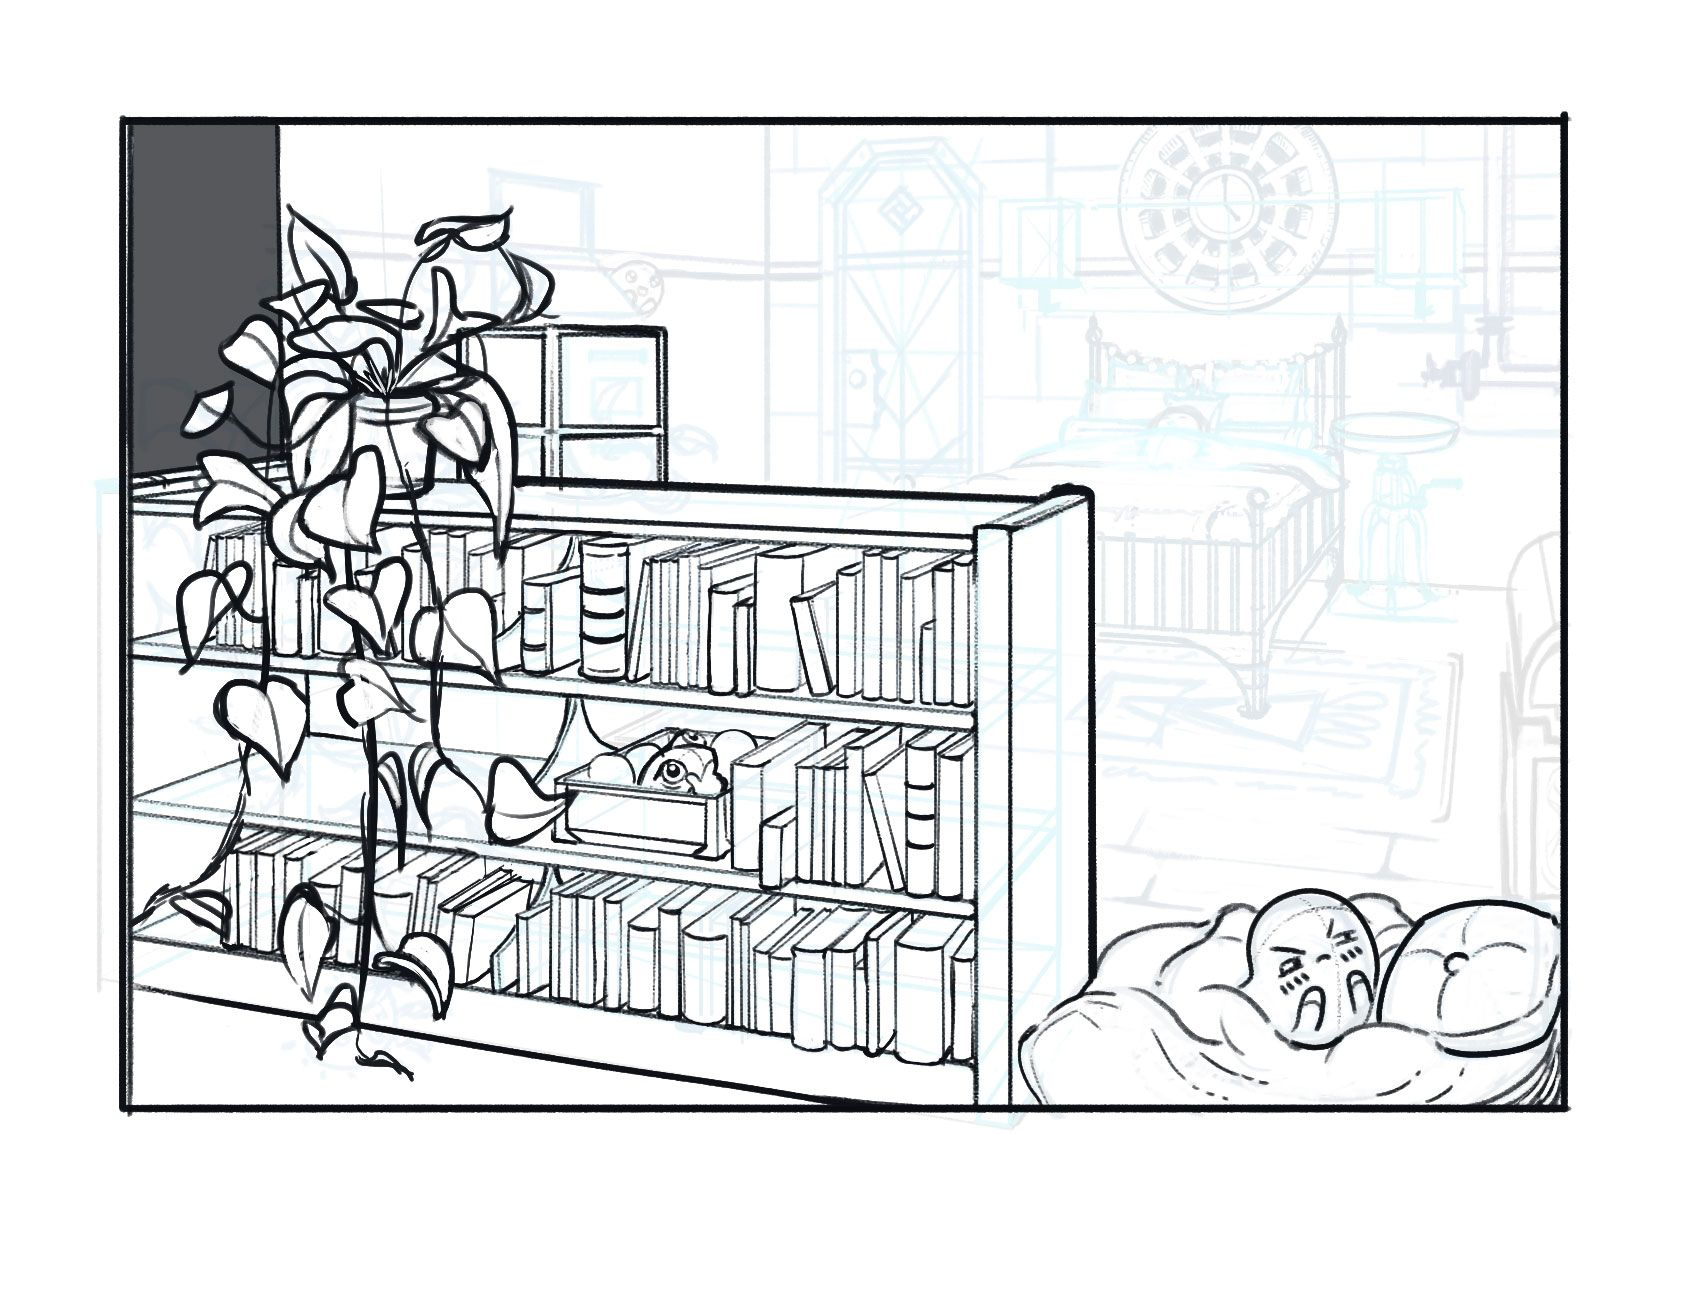 FinalBedroom--Attempt1--inking-in-details.jpg